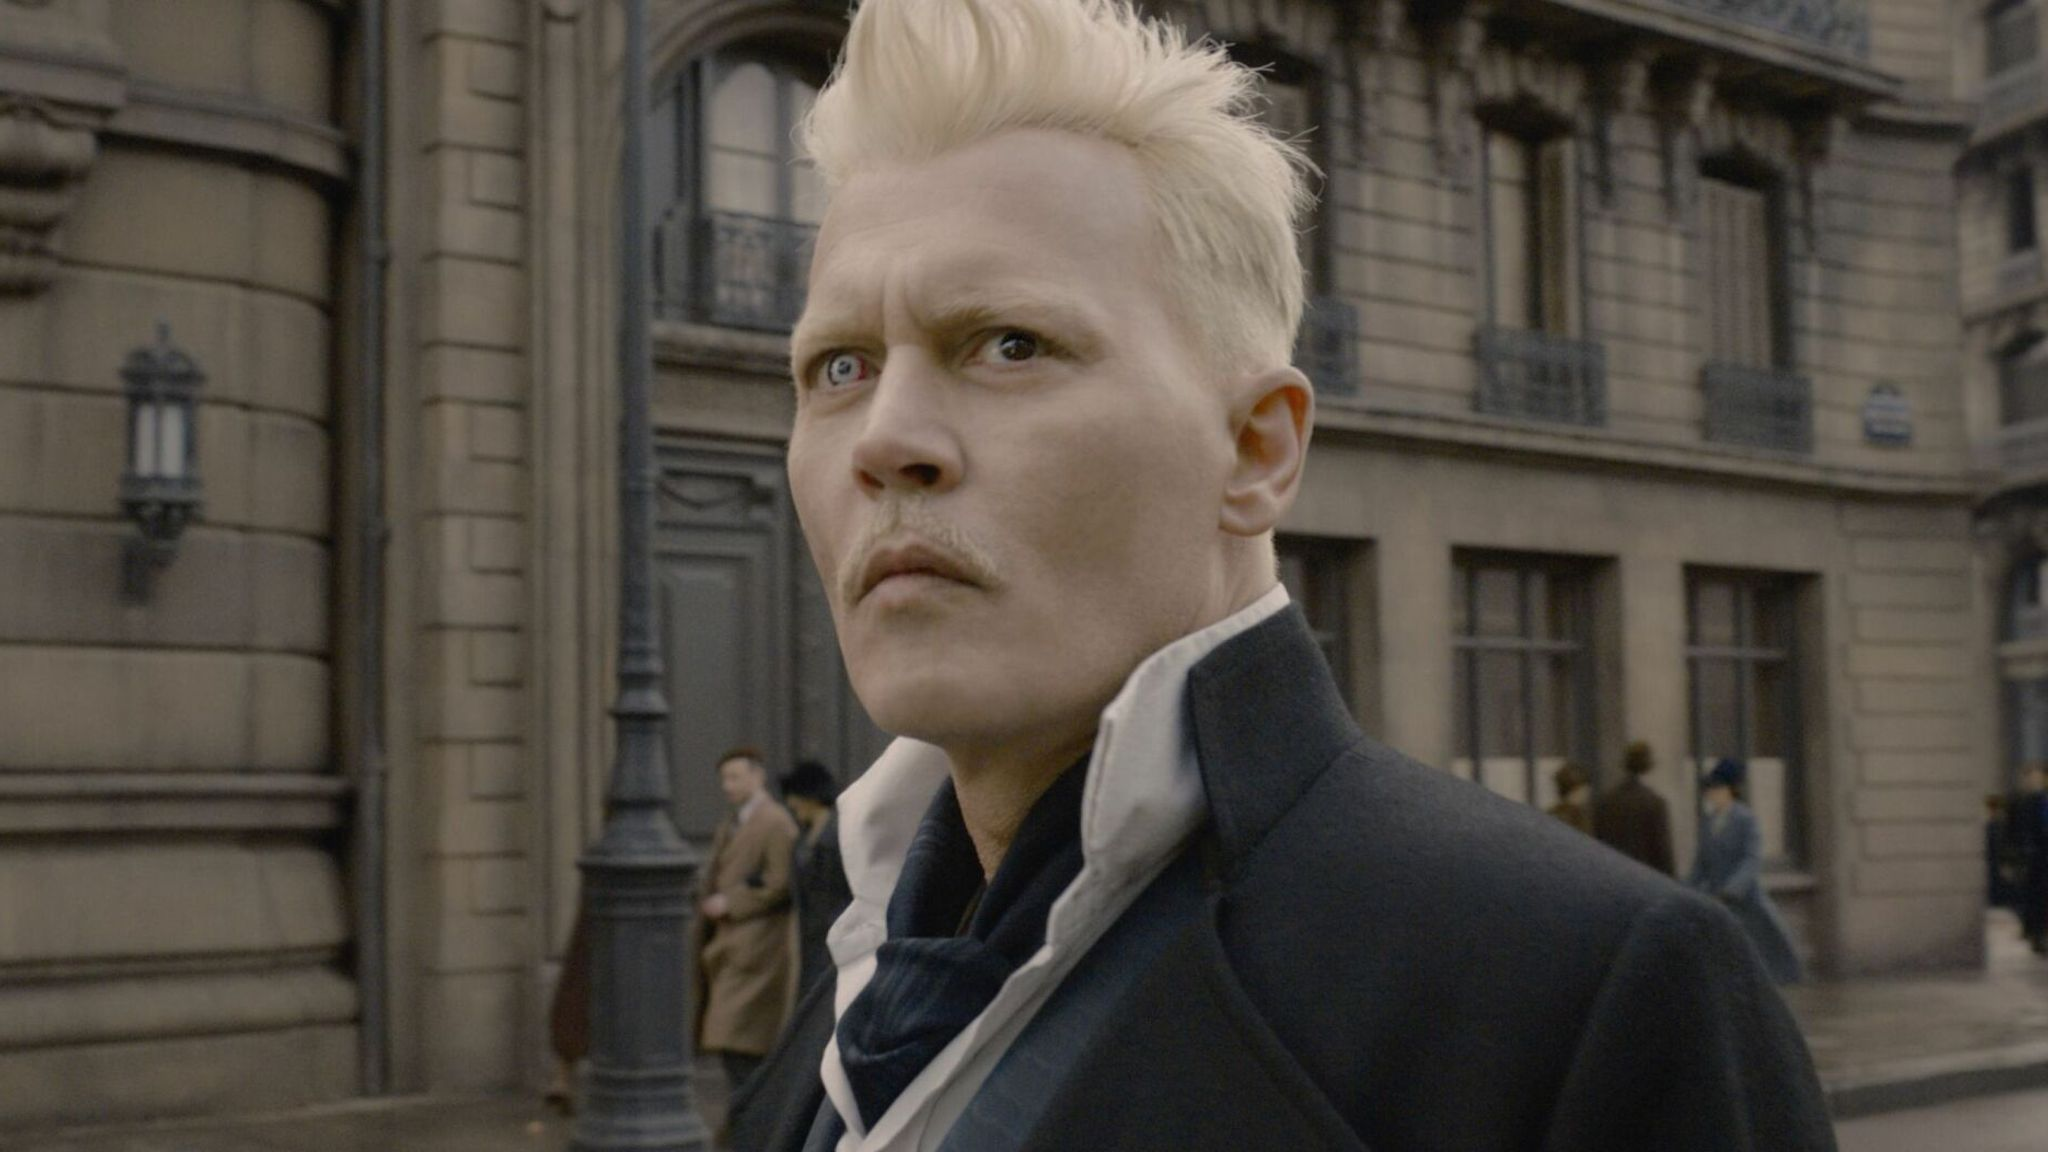 Johnny Depp forced to quit Fantastic Beasts 3 after losing 'wife beater' libel  trial against The Sun | Ents & Arts News | Sky News